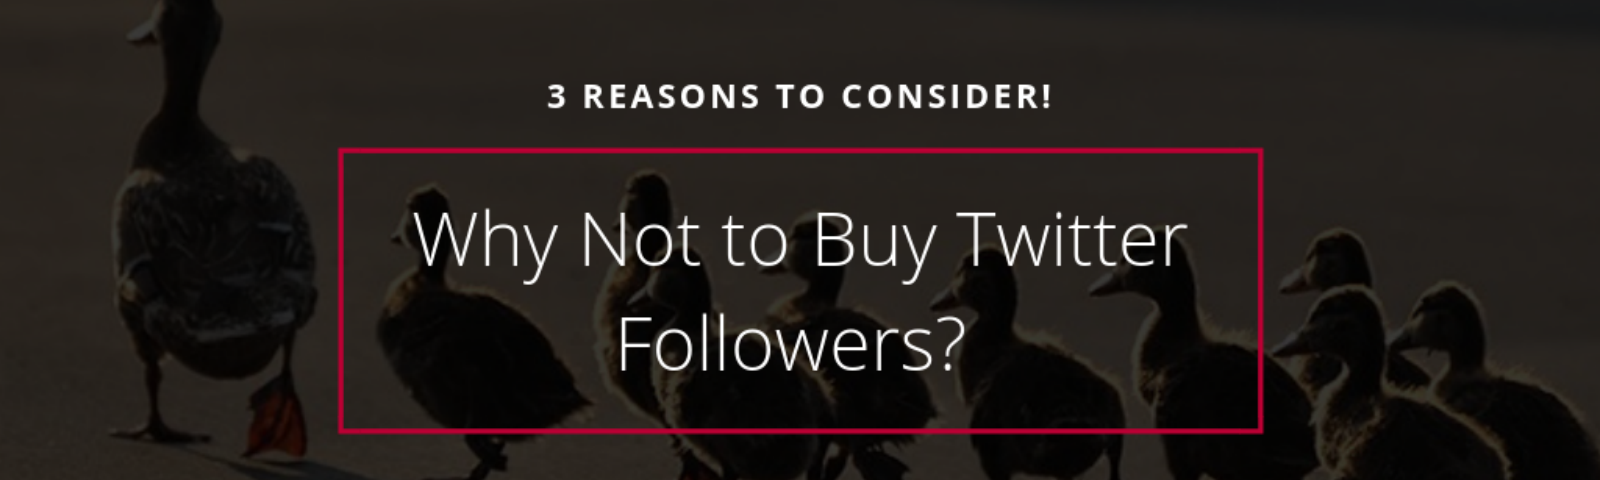 9d22863863de Why Not to Buy Twitter Followers  3 Reasons to Consider! - Circleboom Blog